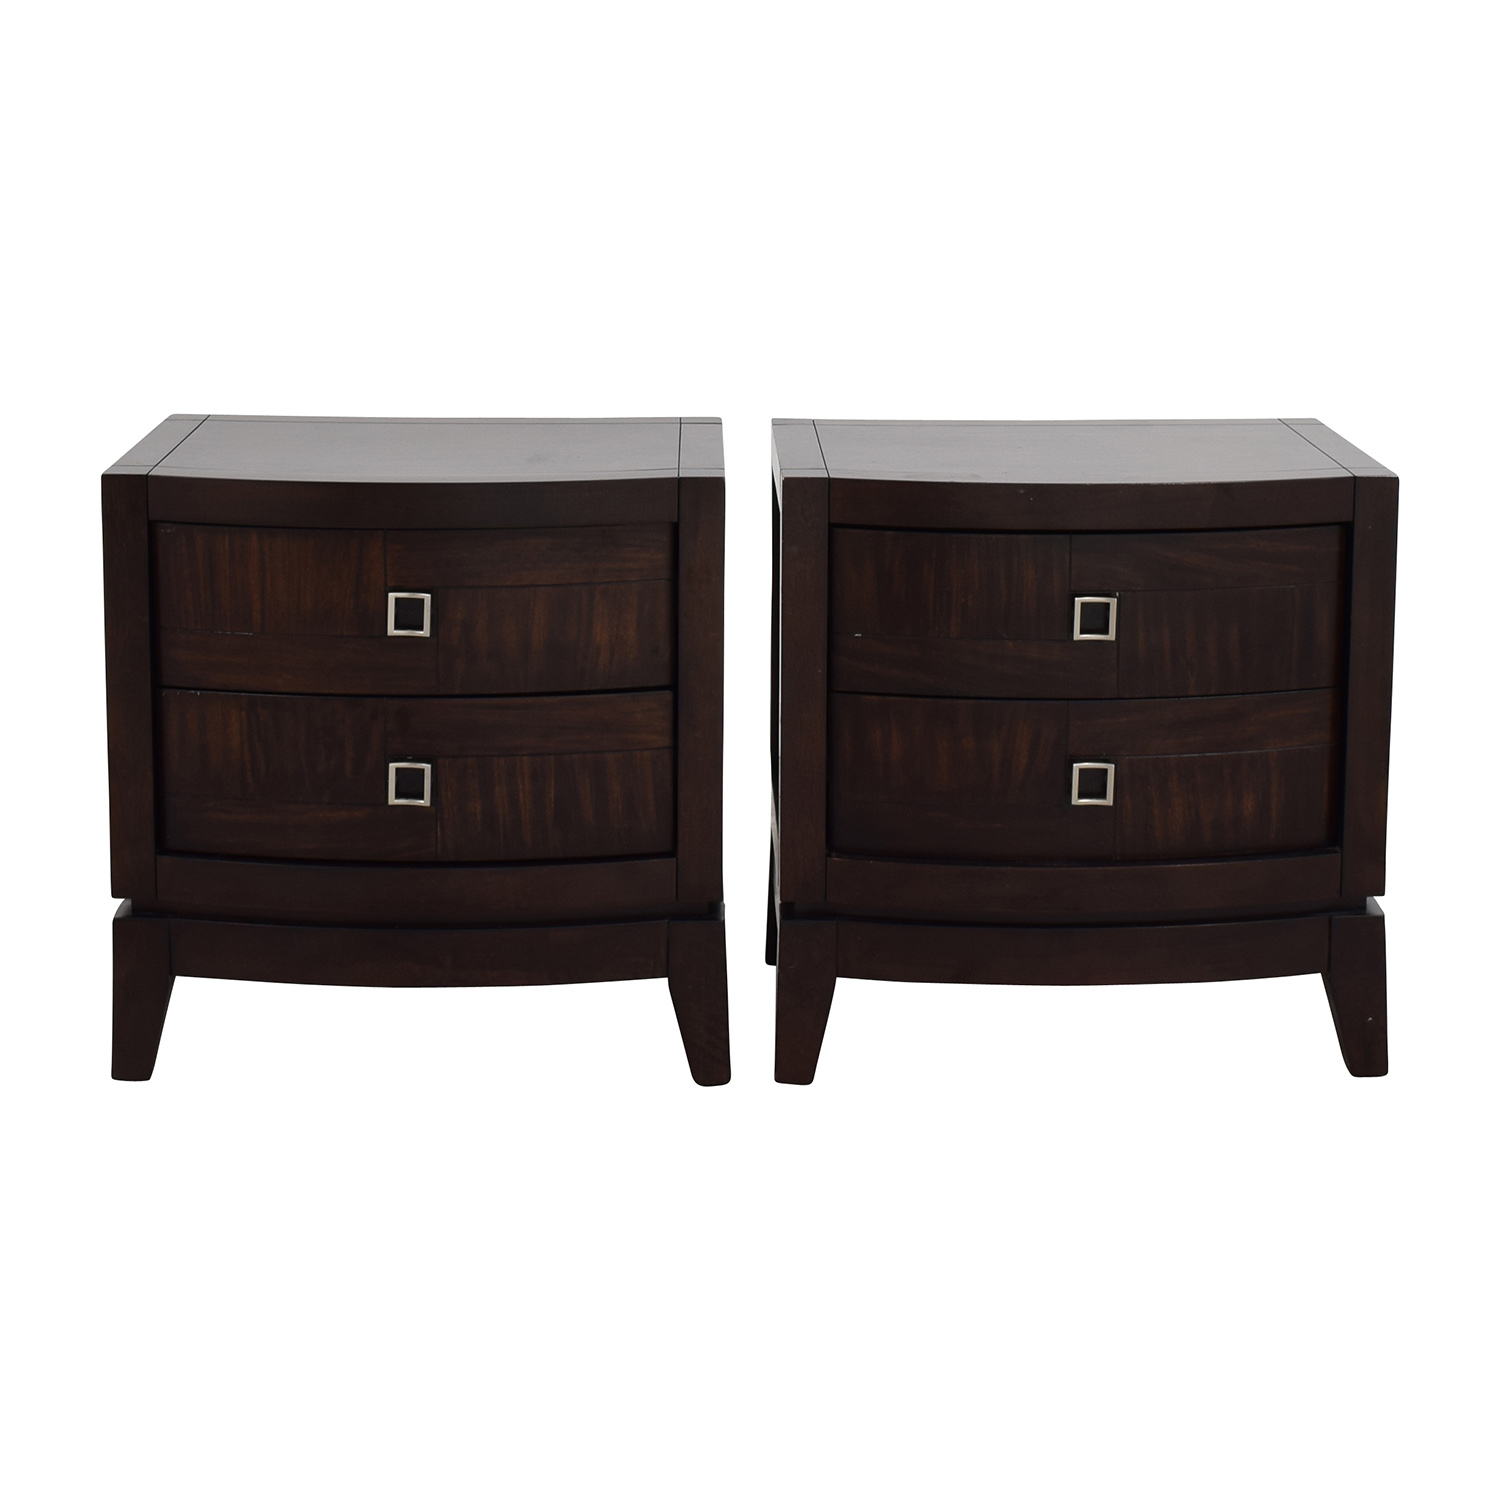 shop Najarian Jigsaw Pattern Two-Drawer Bedside Tables Najarian End Tables